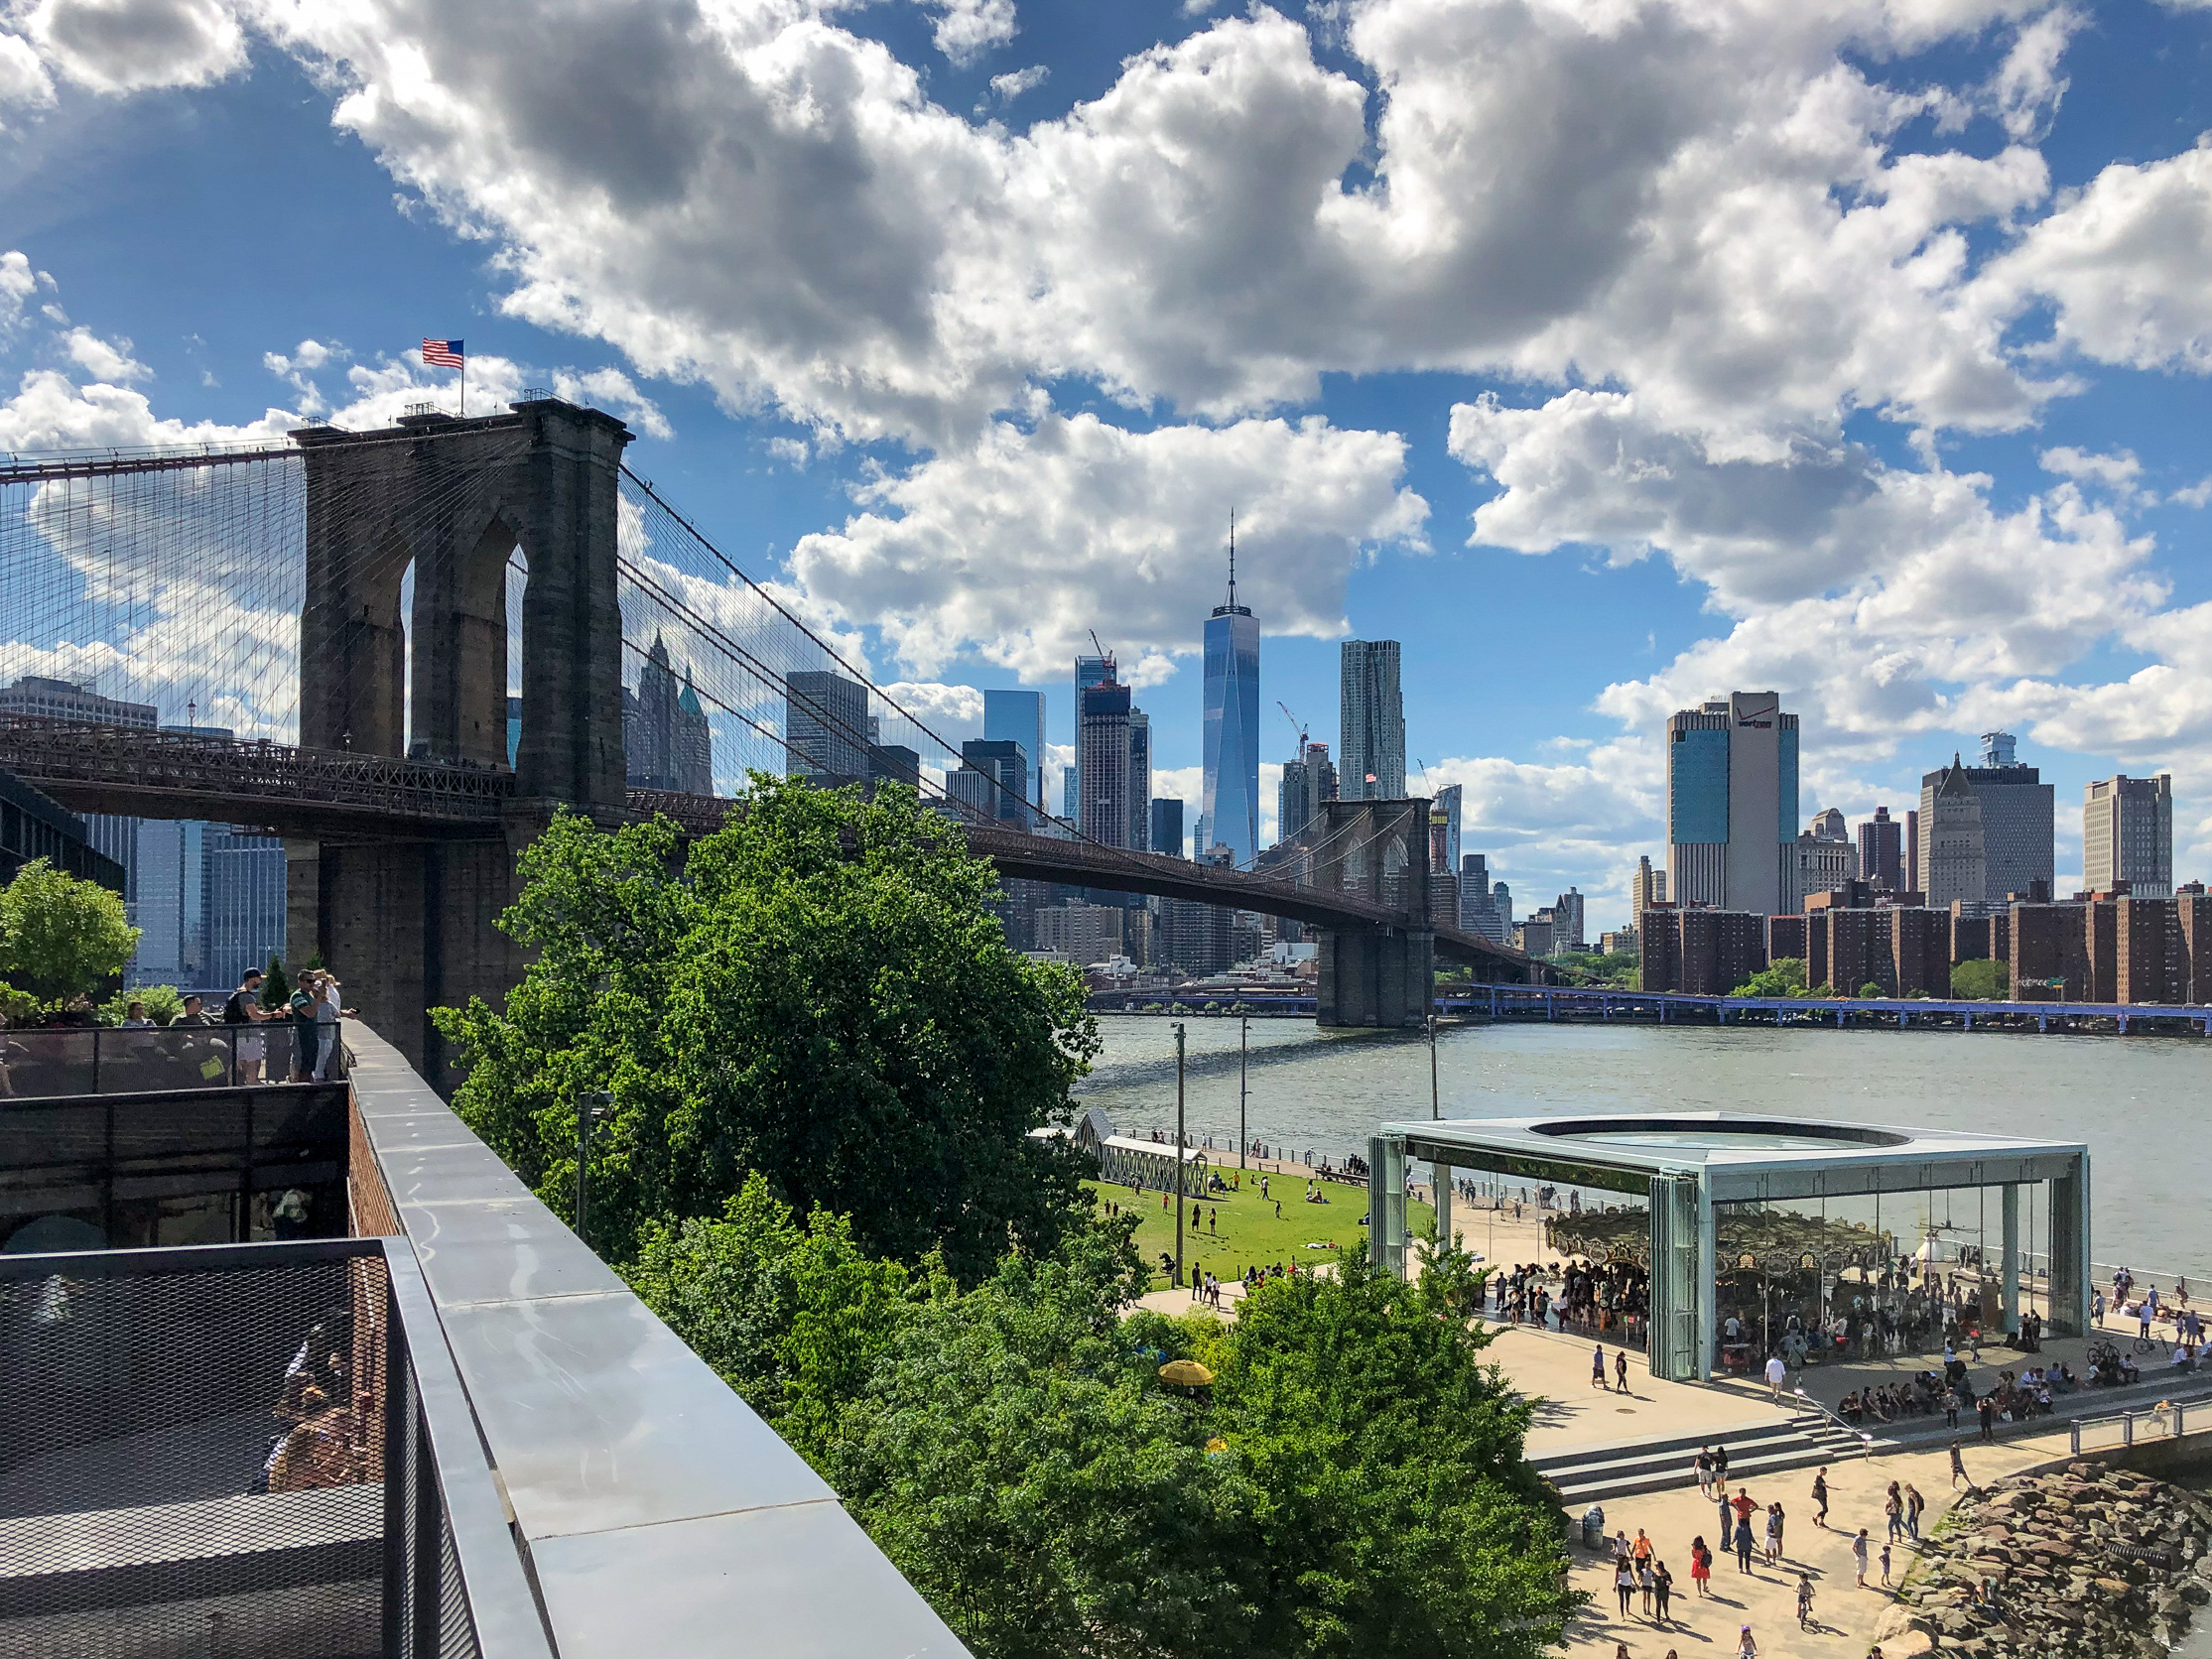 A panoramic of the Brooklyn Bridge, Lower Manhattan and Jane's Carousel in Empire Fulton Ferry Park that edges the East River. I snapped this shot from a new vantage point atop a terrace of the Empire Stores.